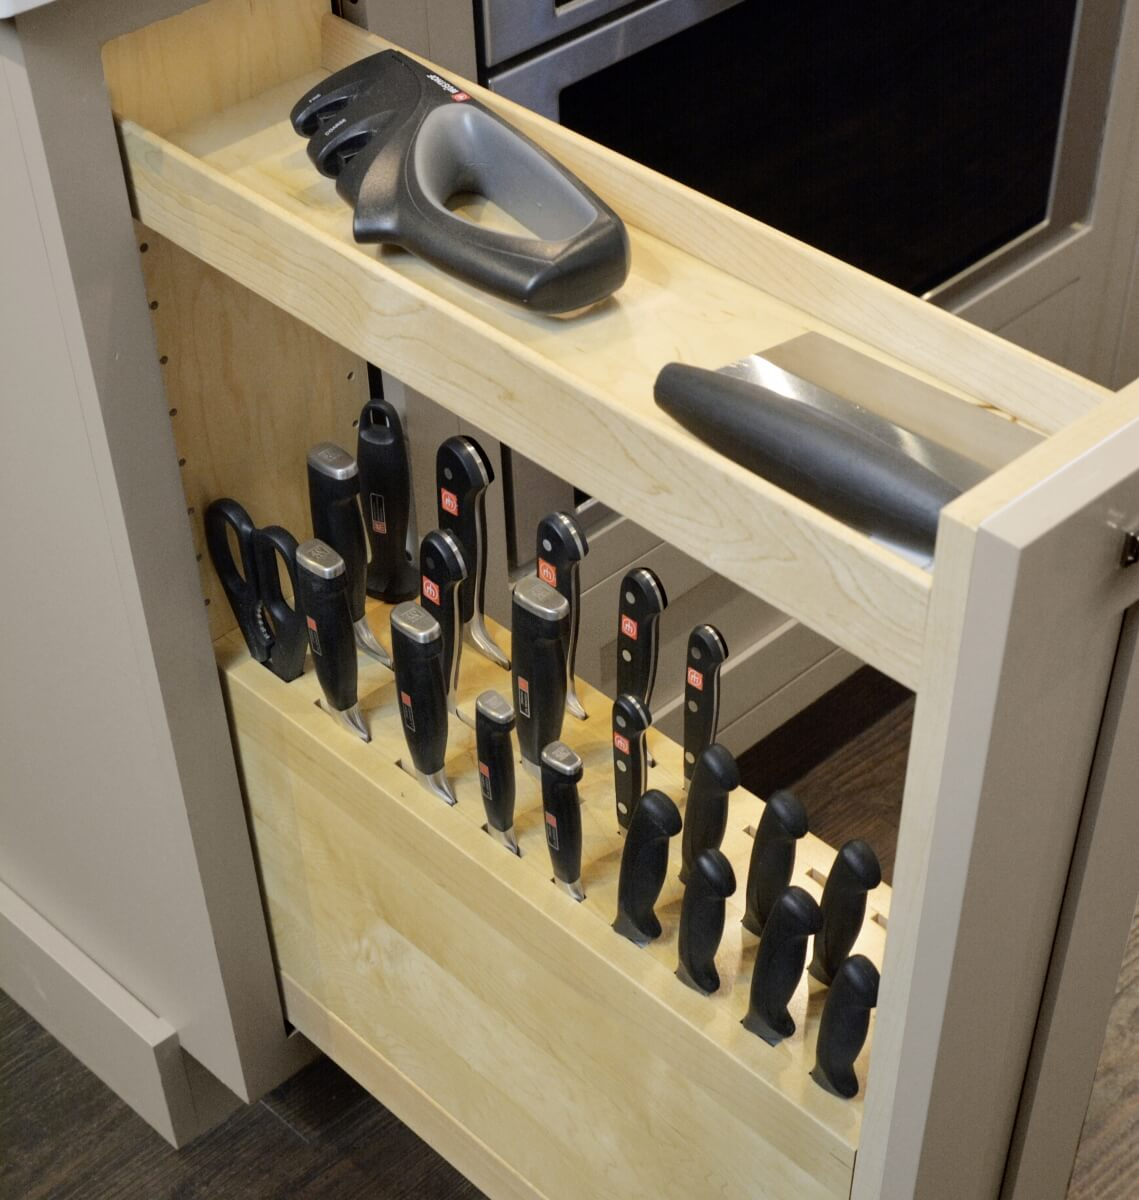 A Knife Block Pull-Out Cabinet using the top tier for misc. food preparation tools.